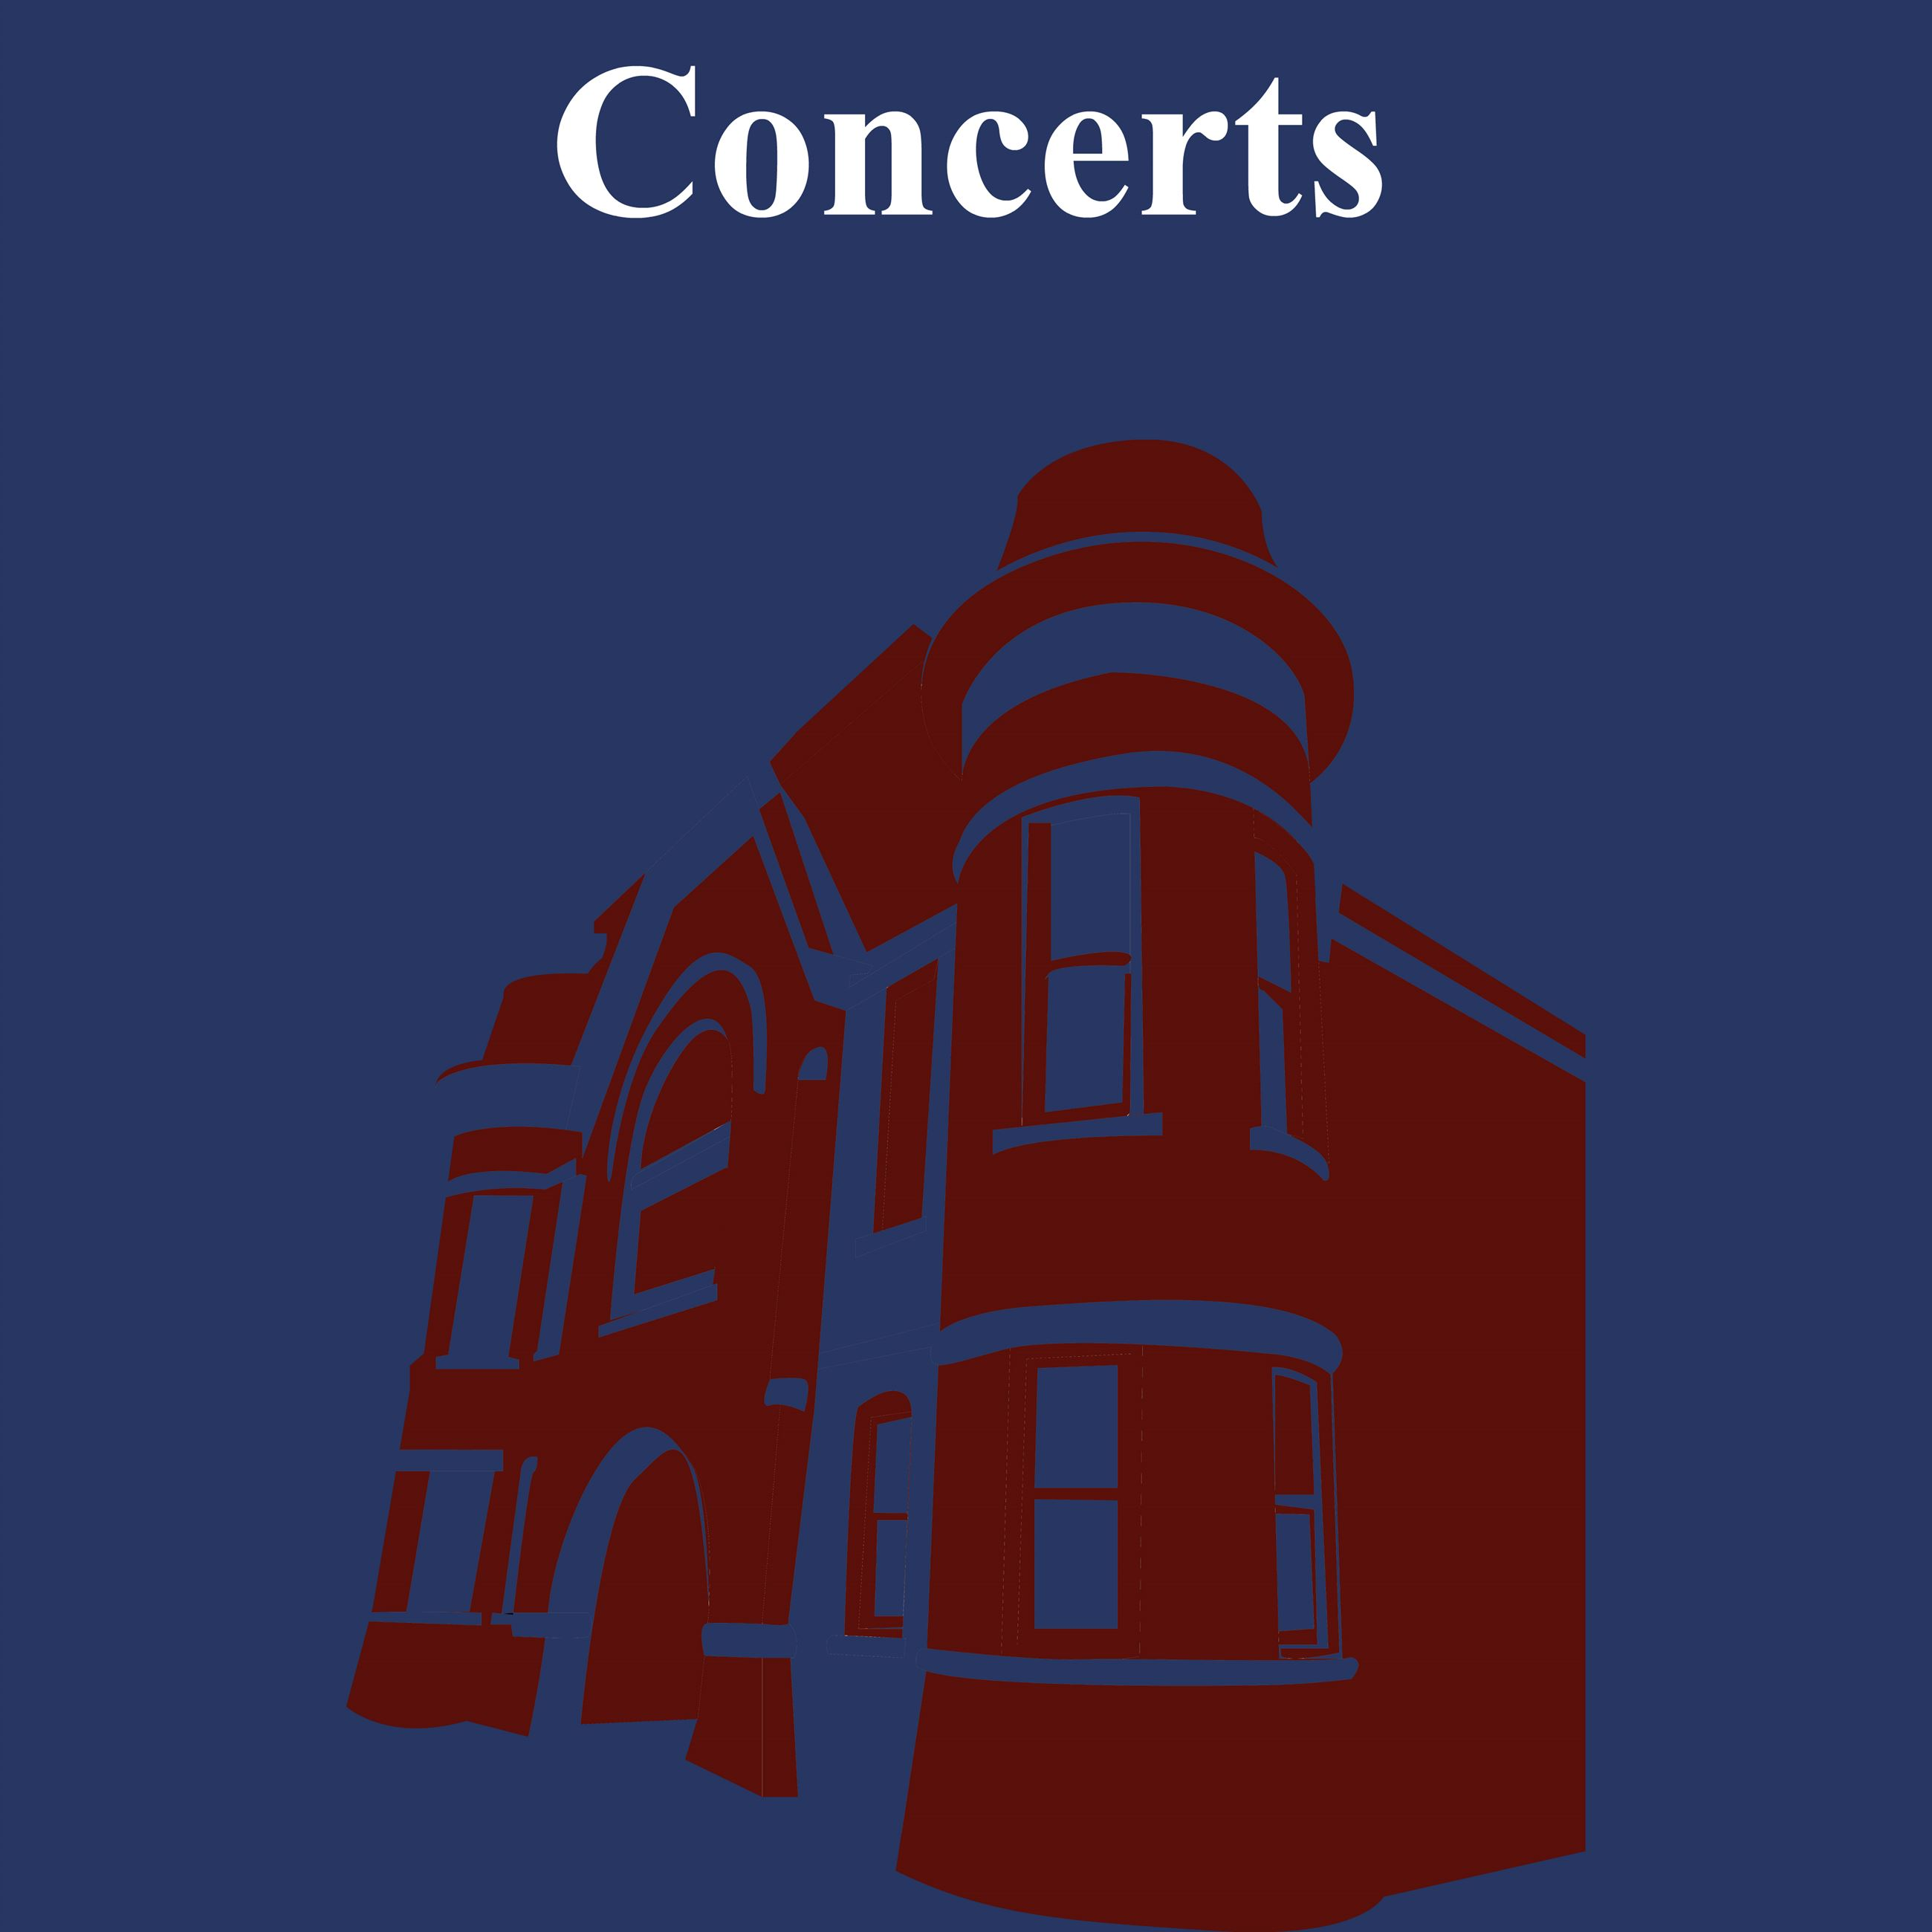 CLICK HERE for information about upcoming concerts